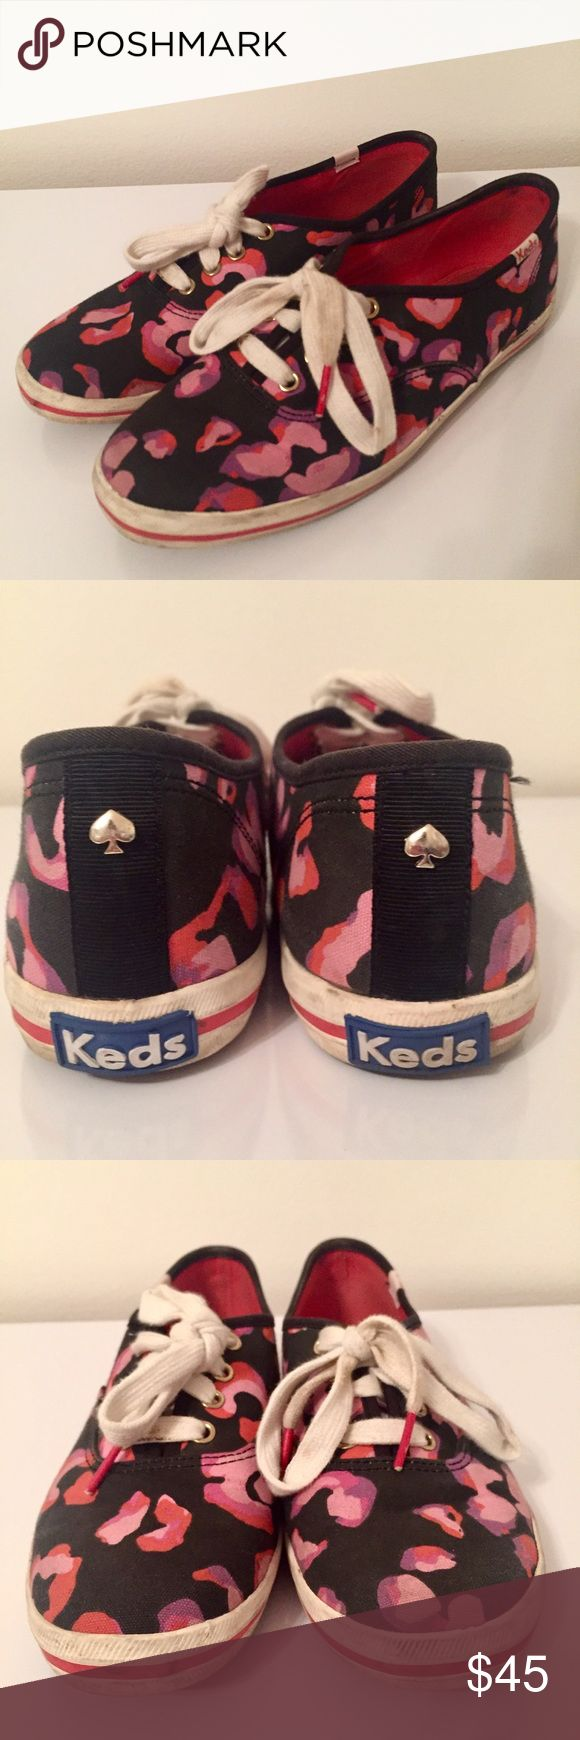 ♠️ Kate Spade x Keds Sneakers Slightly used Kate spade x Keds sneakers. Super stylish! Style: Wonder Floral🌸 Dirt can be cleaned and laces can be washed. Prices always negotiable!✨ kate spade Shoes Sneakers